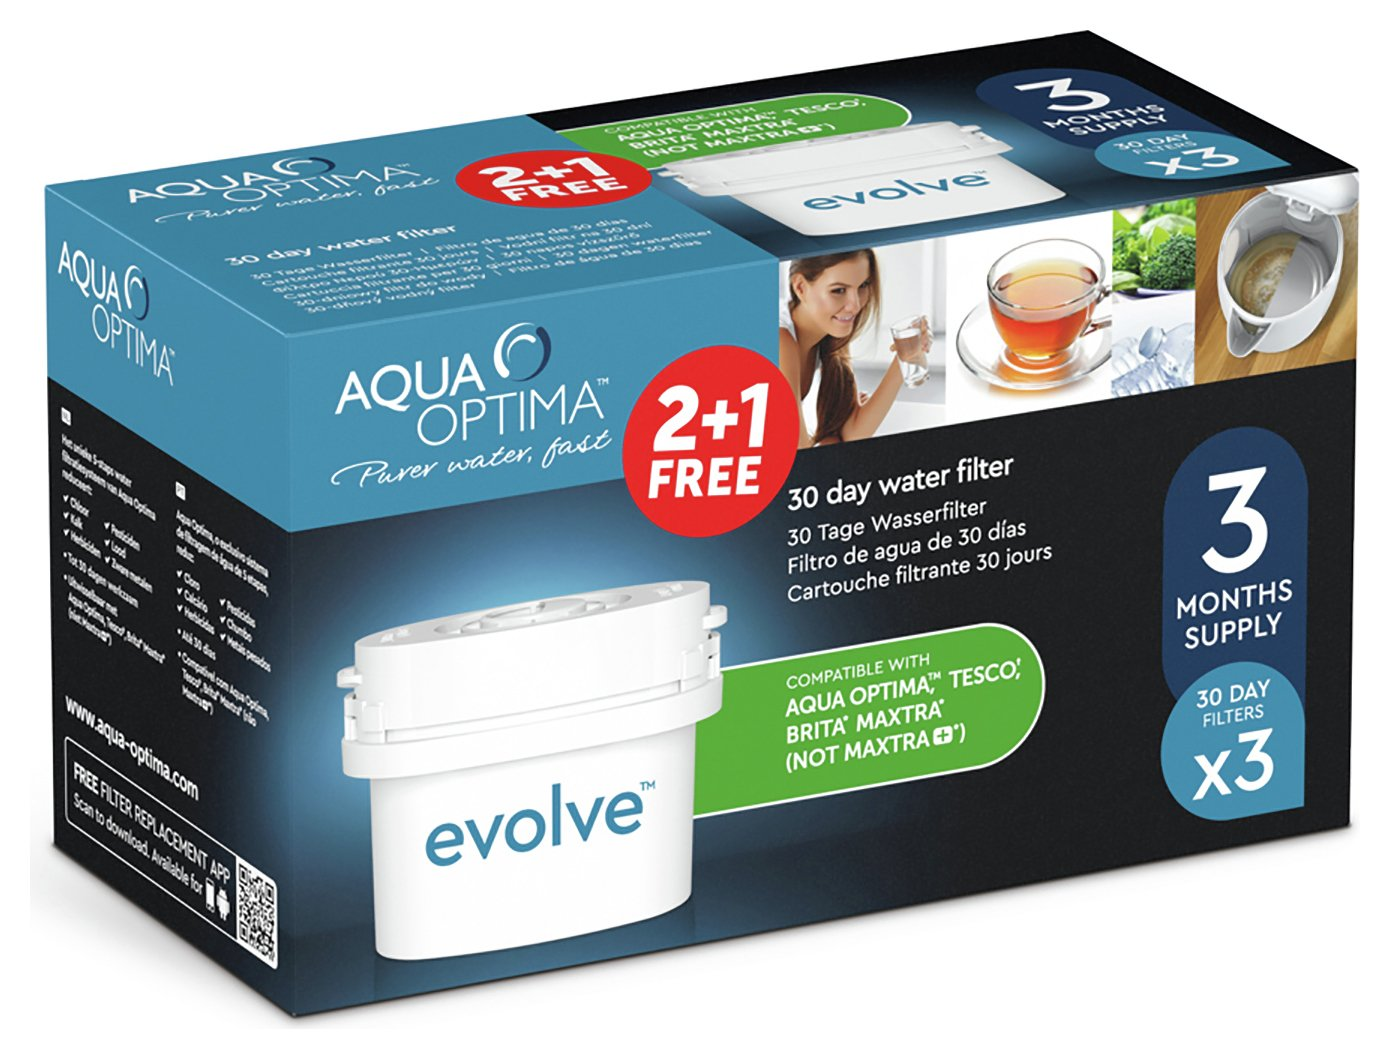 Image of Aqua Optima Evolve Water Filter Cartridges - 3 Pack